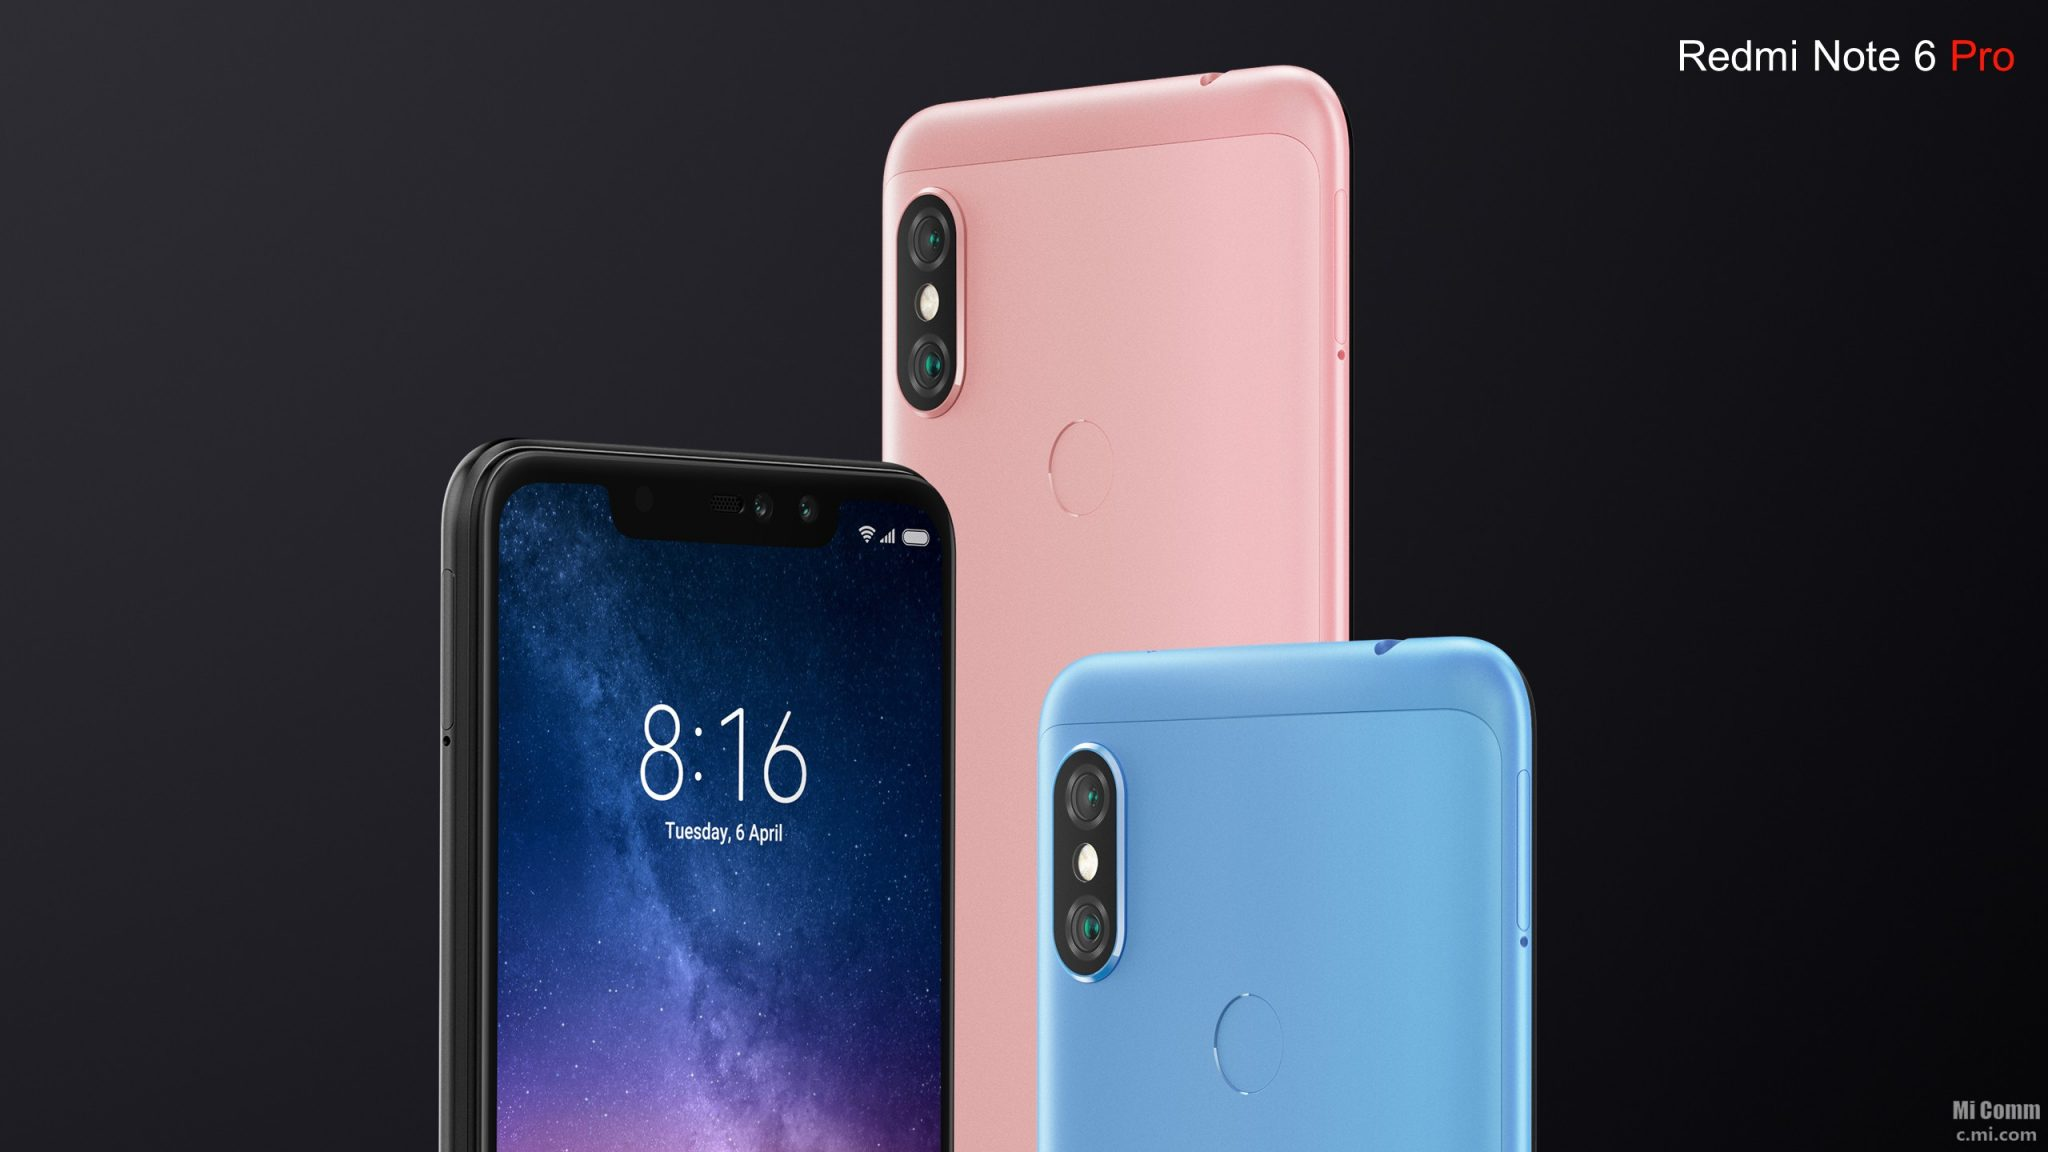 Xiaomi Redmi Note 6 Pro quietly announced in Thailand 1